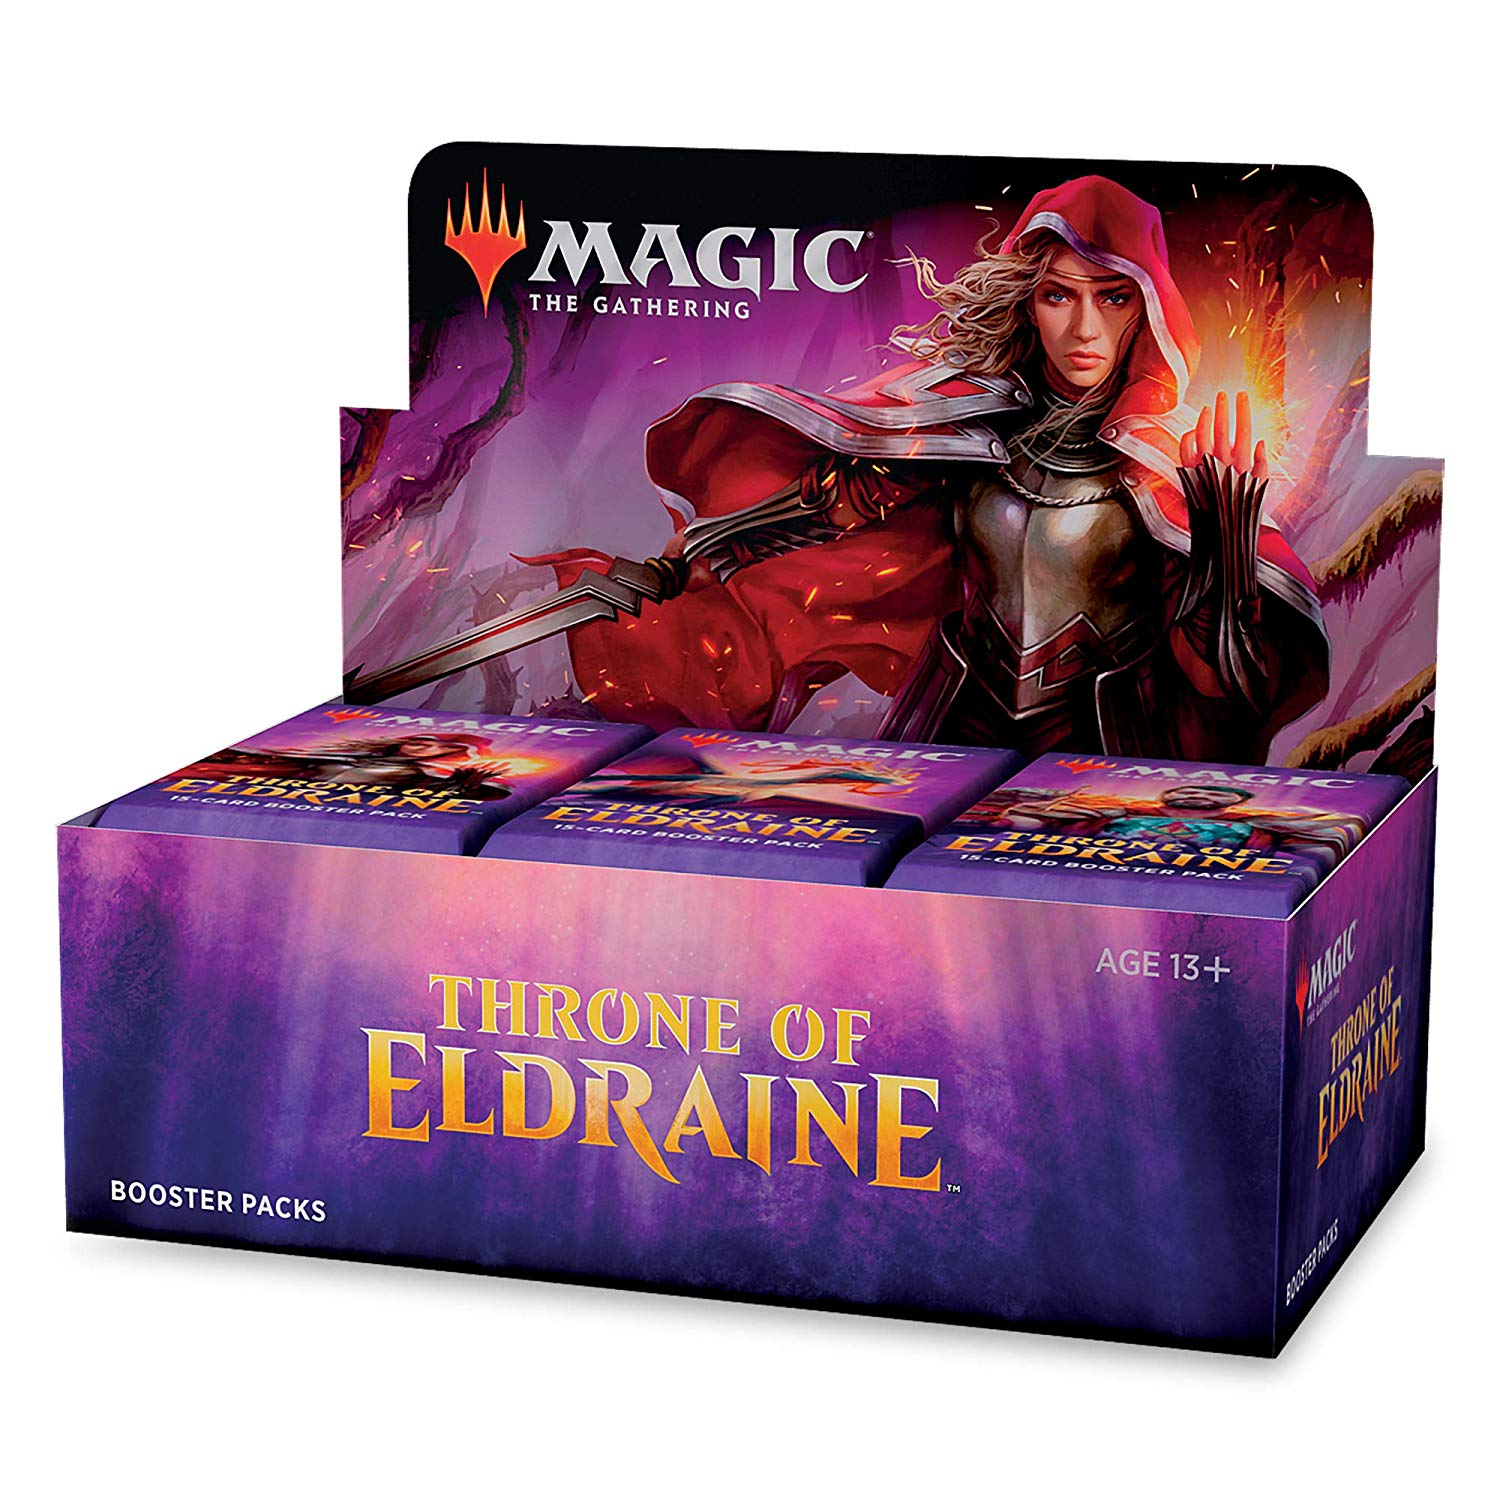 Throne of Eldraine Booster Box (Includes Buy-A-Box & Collectors Pack)(Promo items 1 per customer)